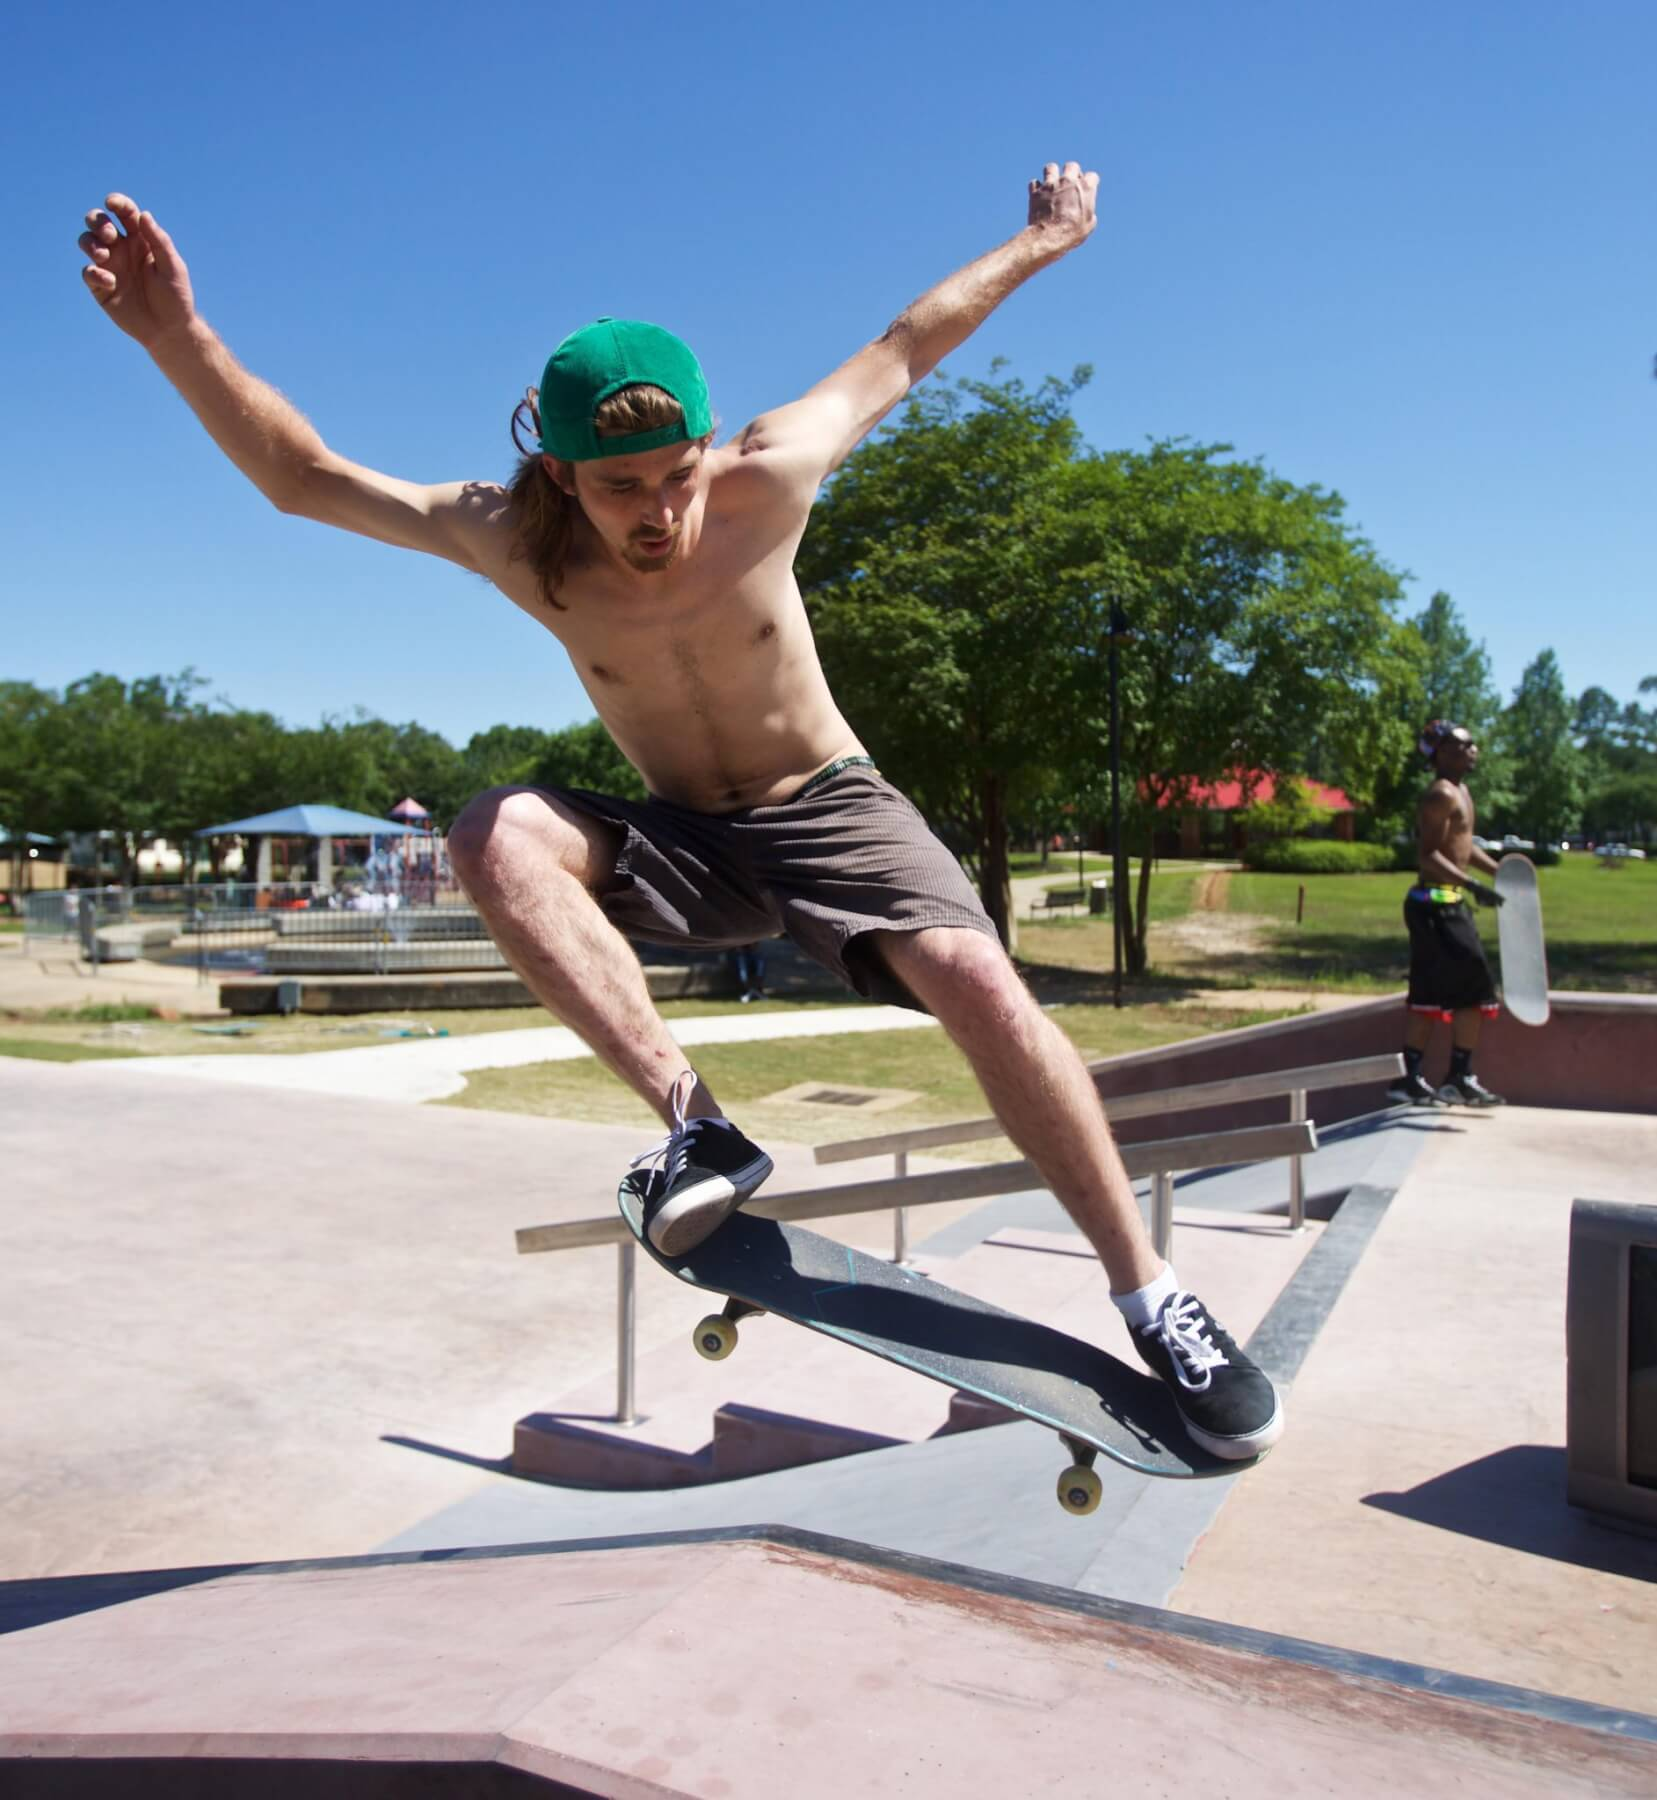 New skate park turnout 'insane'